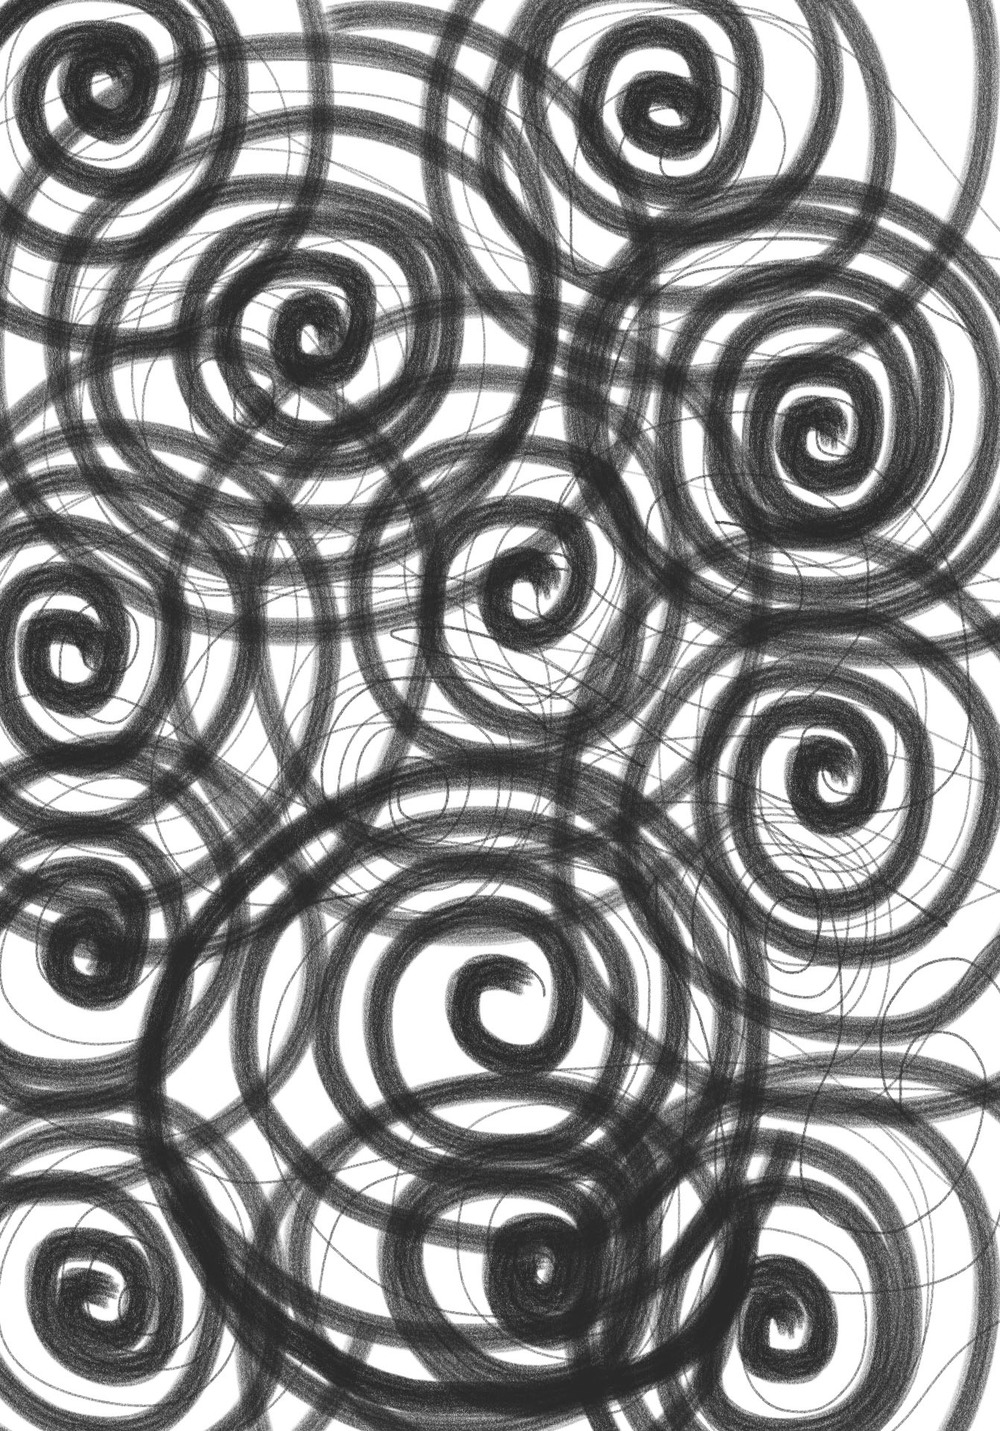 Spirals of Love, 2012, Digital Art